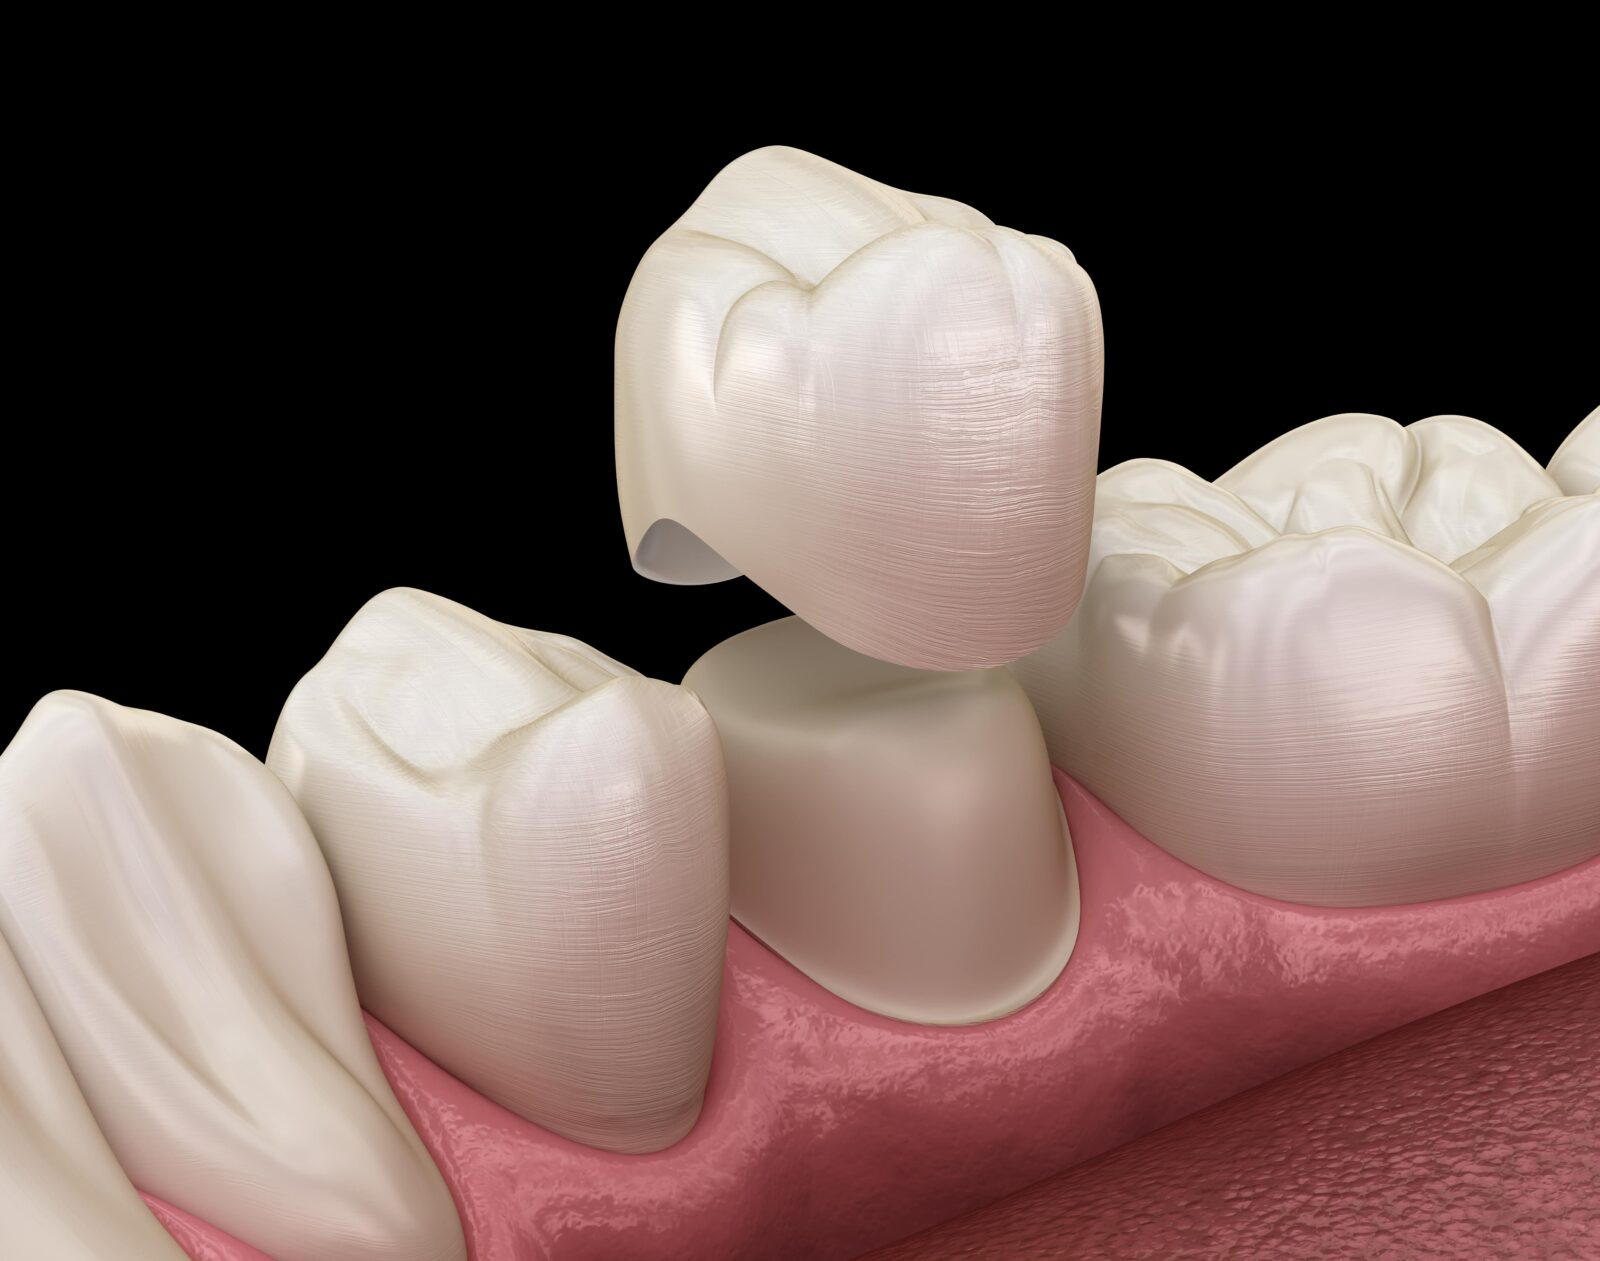 dental crown being placed on tooth